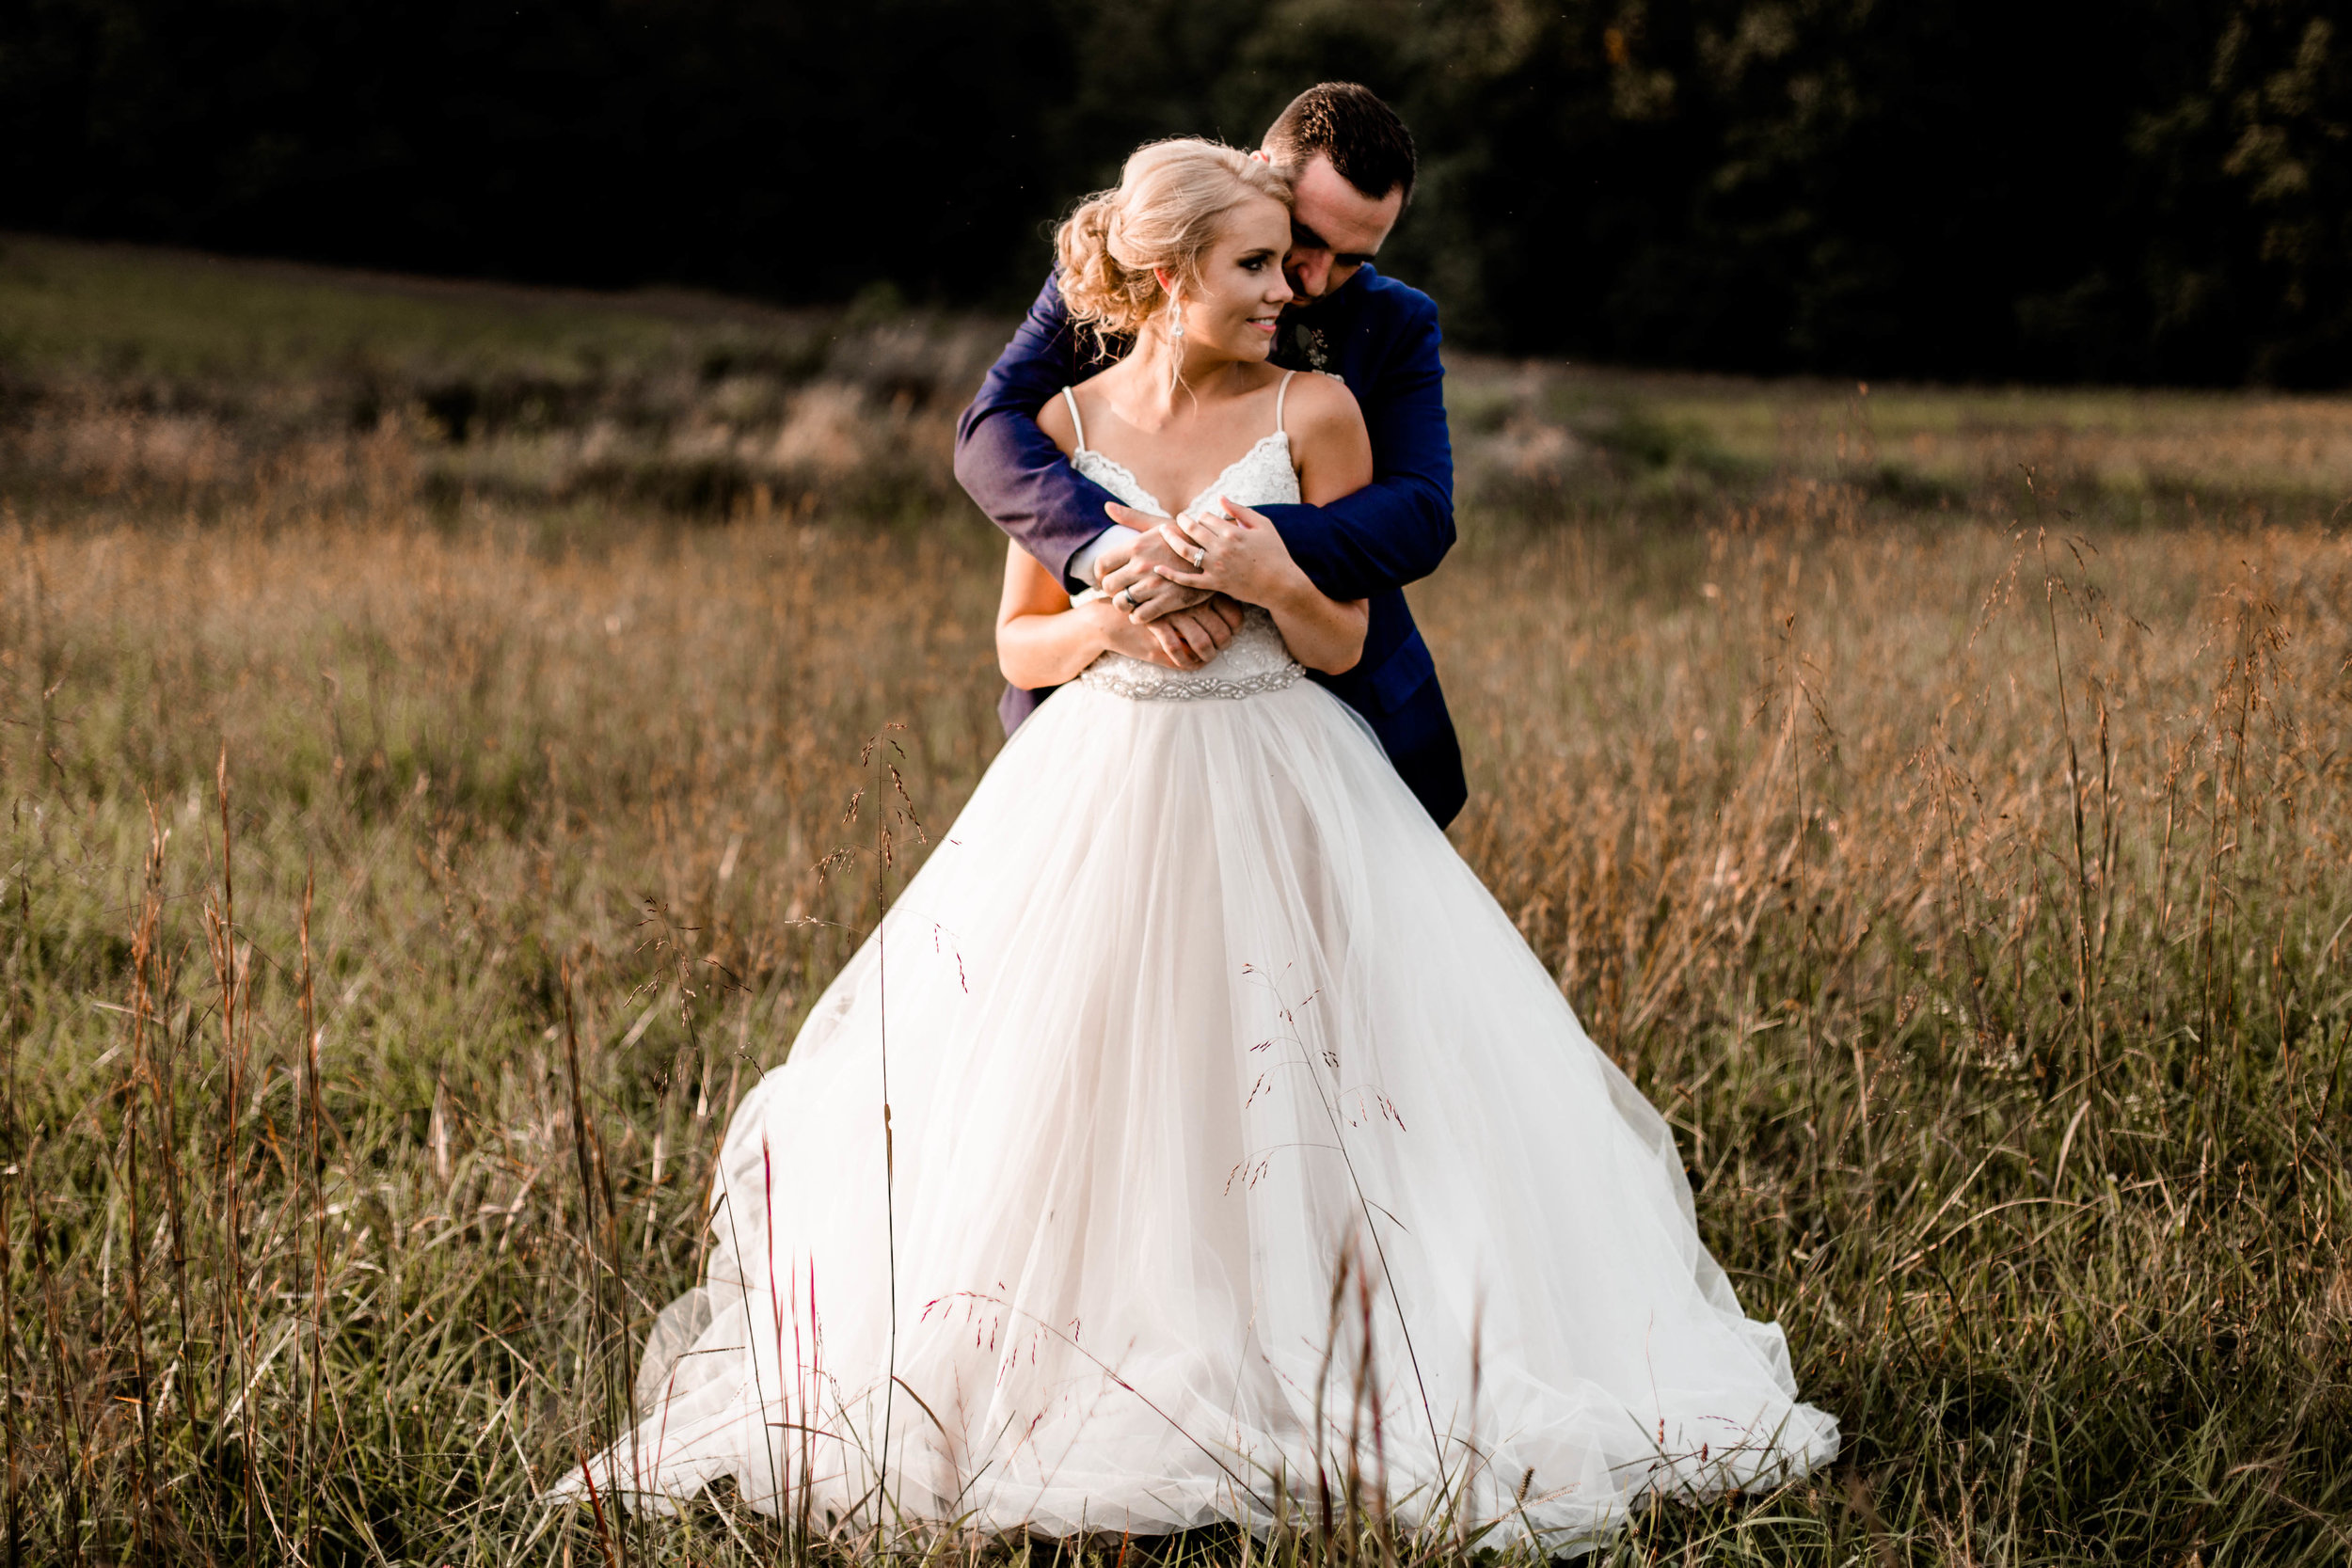 nicole-daacke-photography-intimate-wedding-in-a-lavender-field-washington-state-wedding-photographer-intimate-elopement-golden-lavender-field-wedding-photos-57.jpg